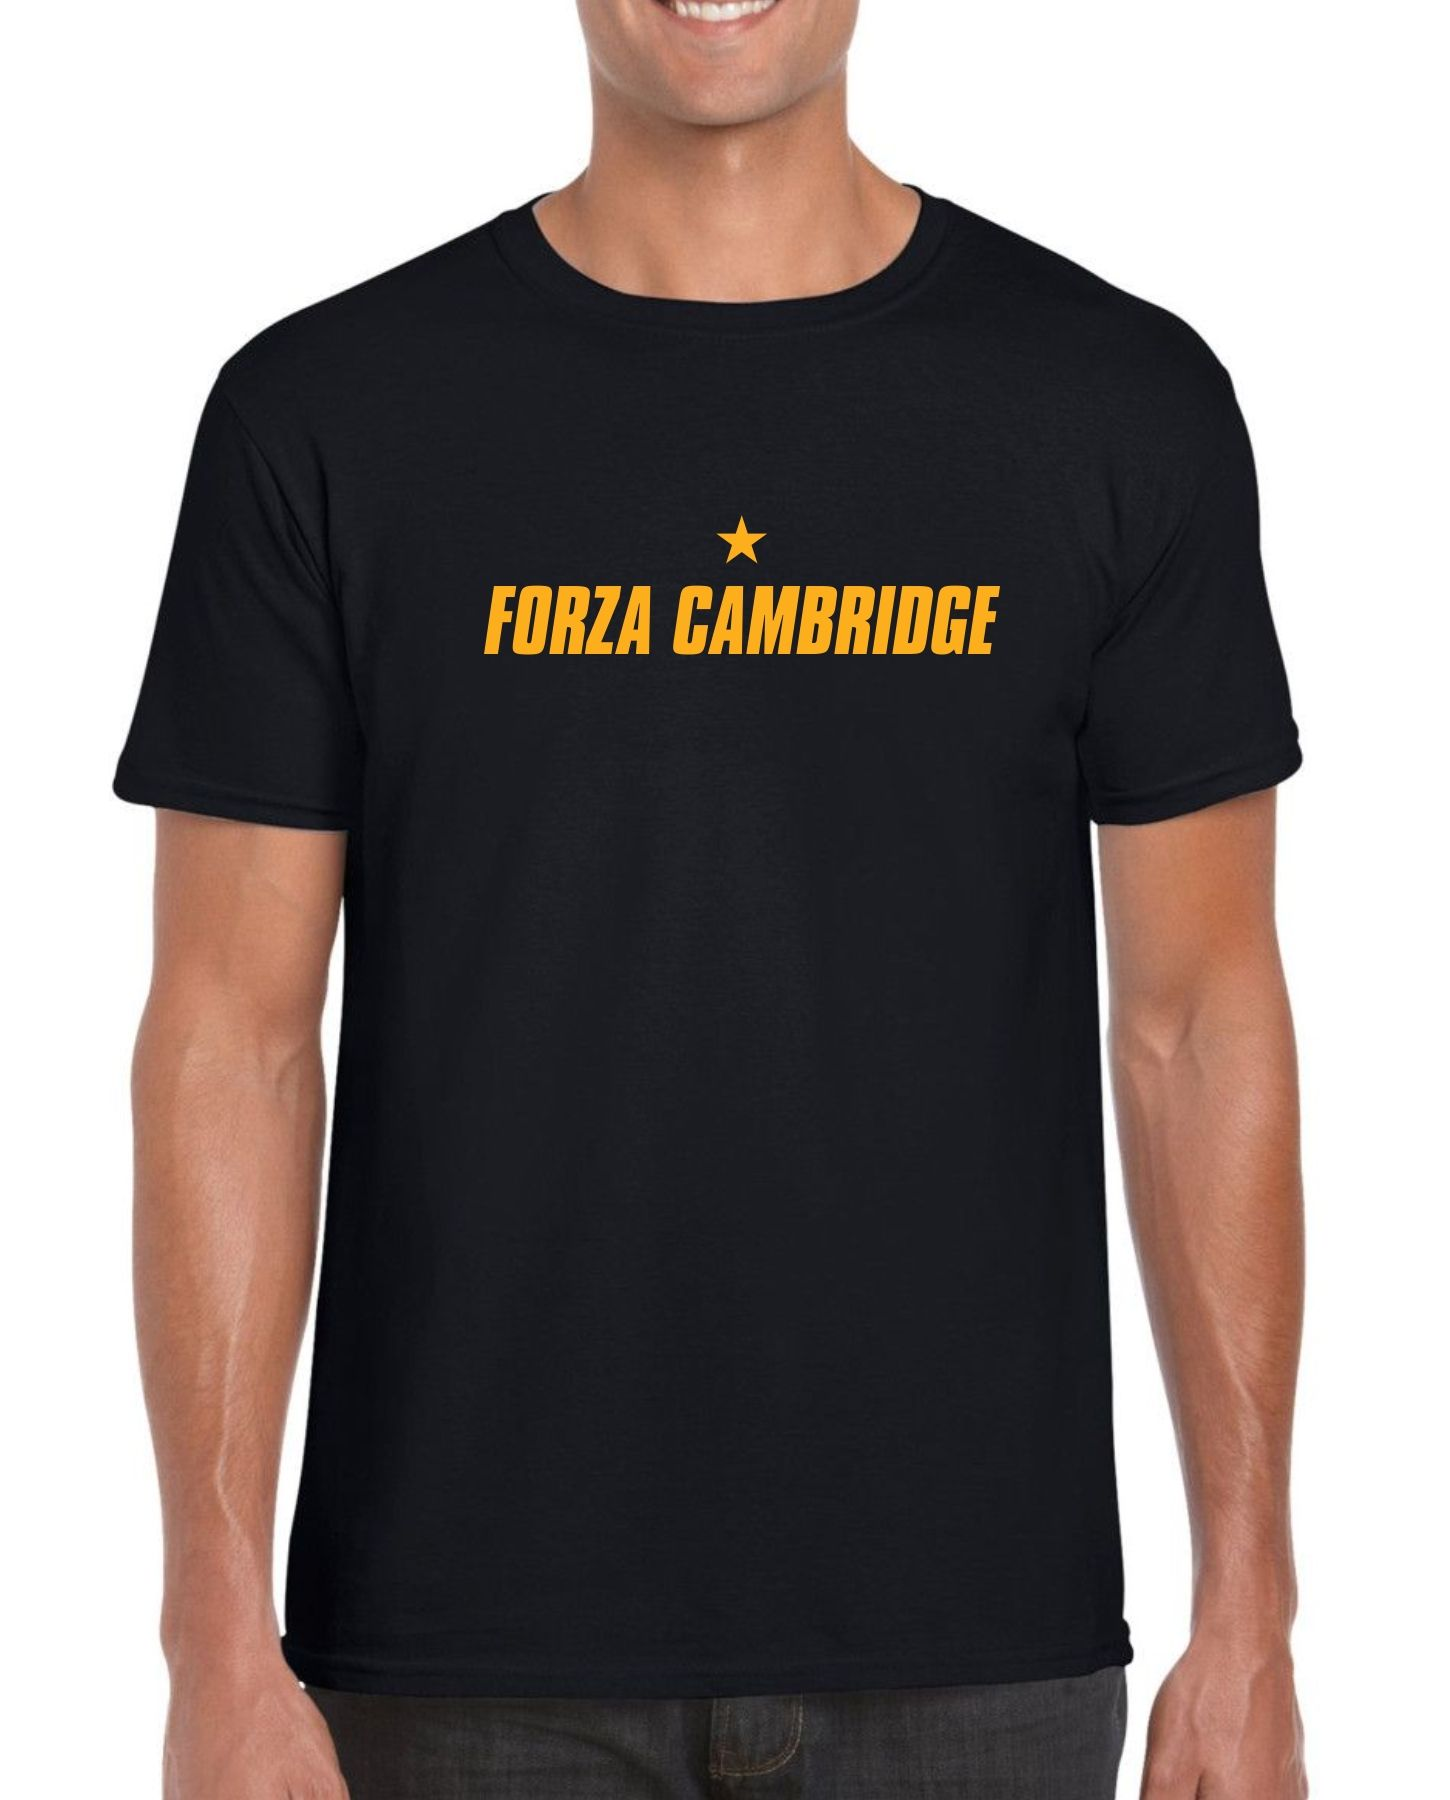 UTAS Forza Cambridge